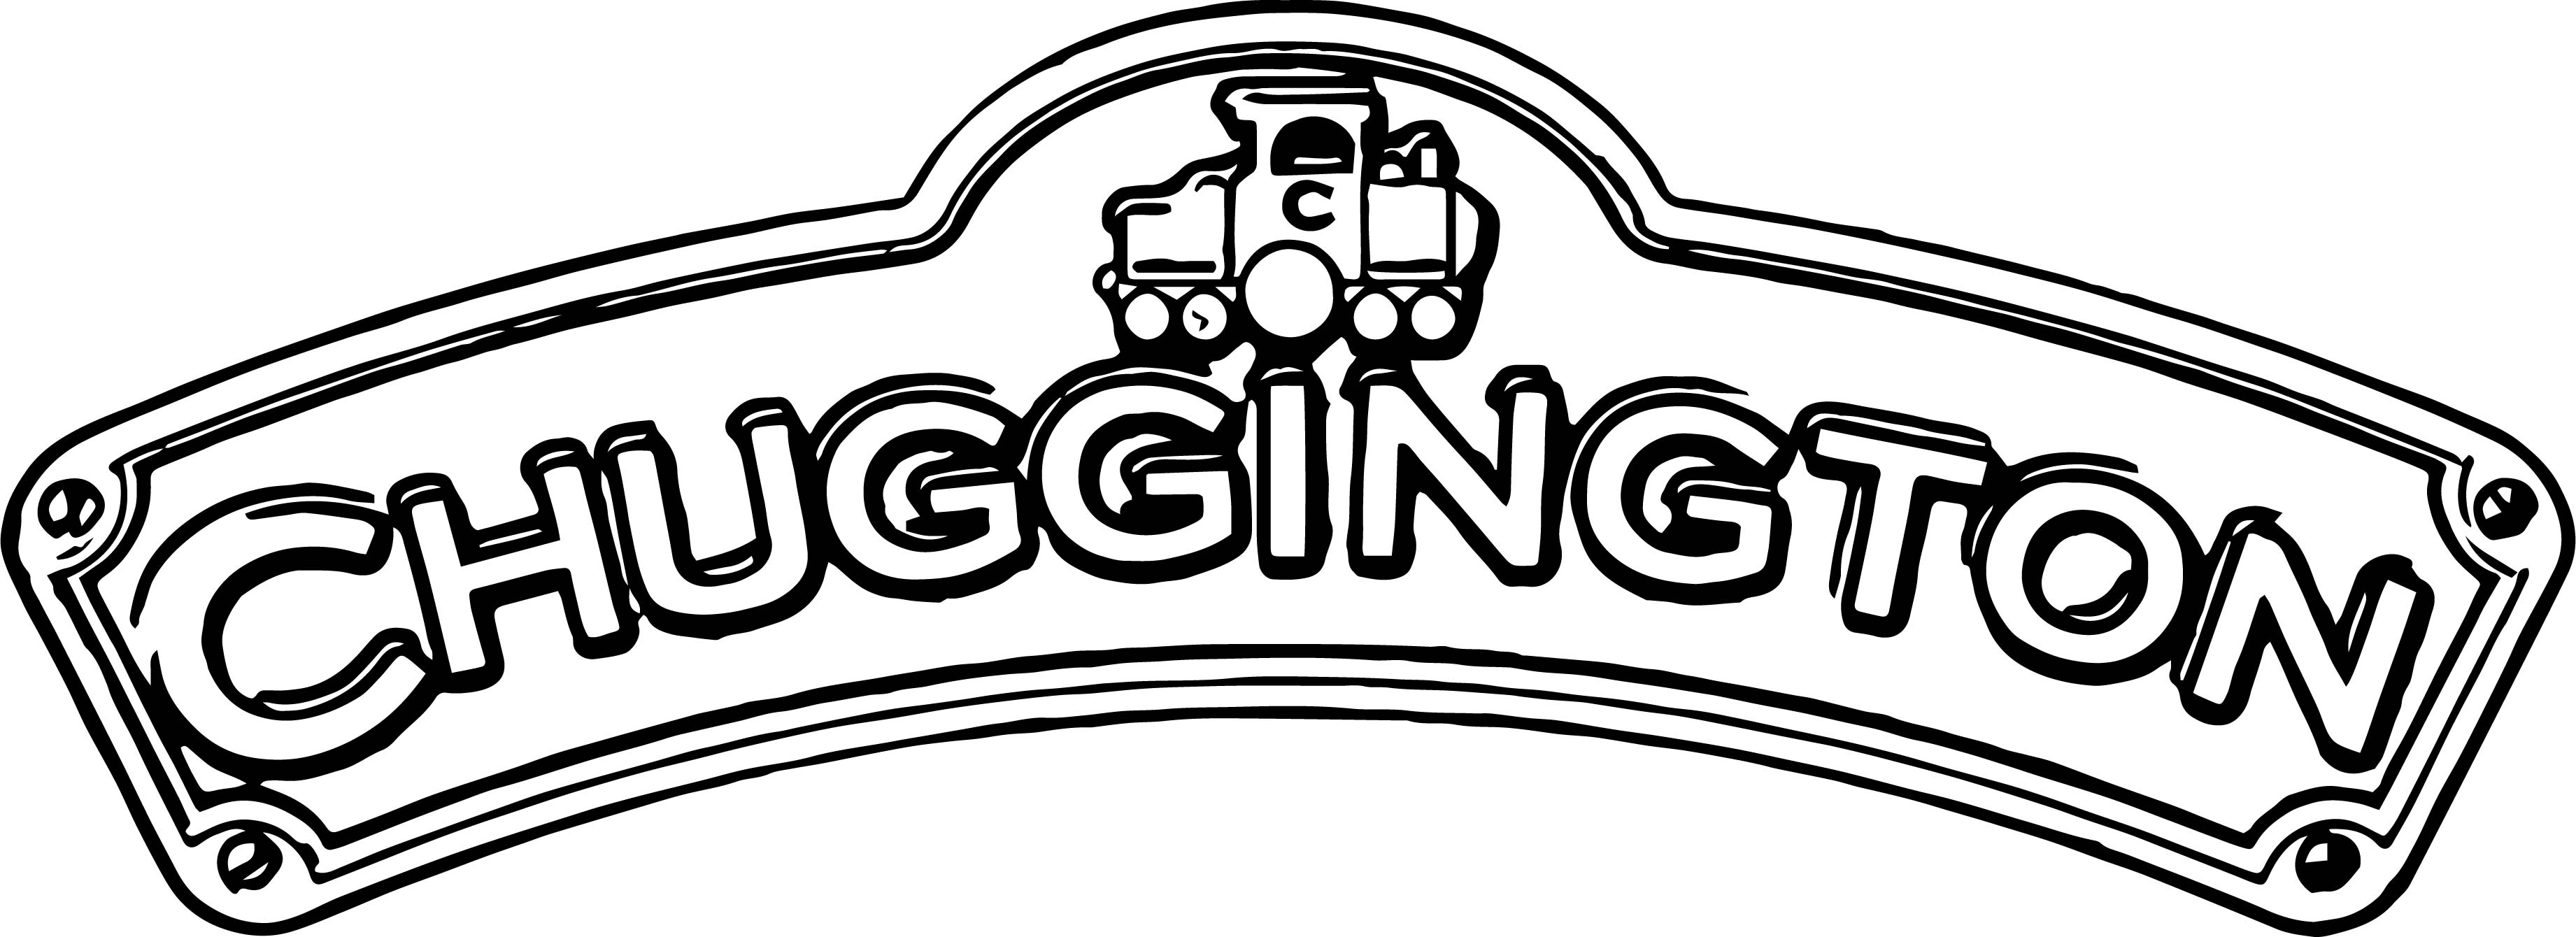 Chuggington Logo Coloring Page